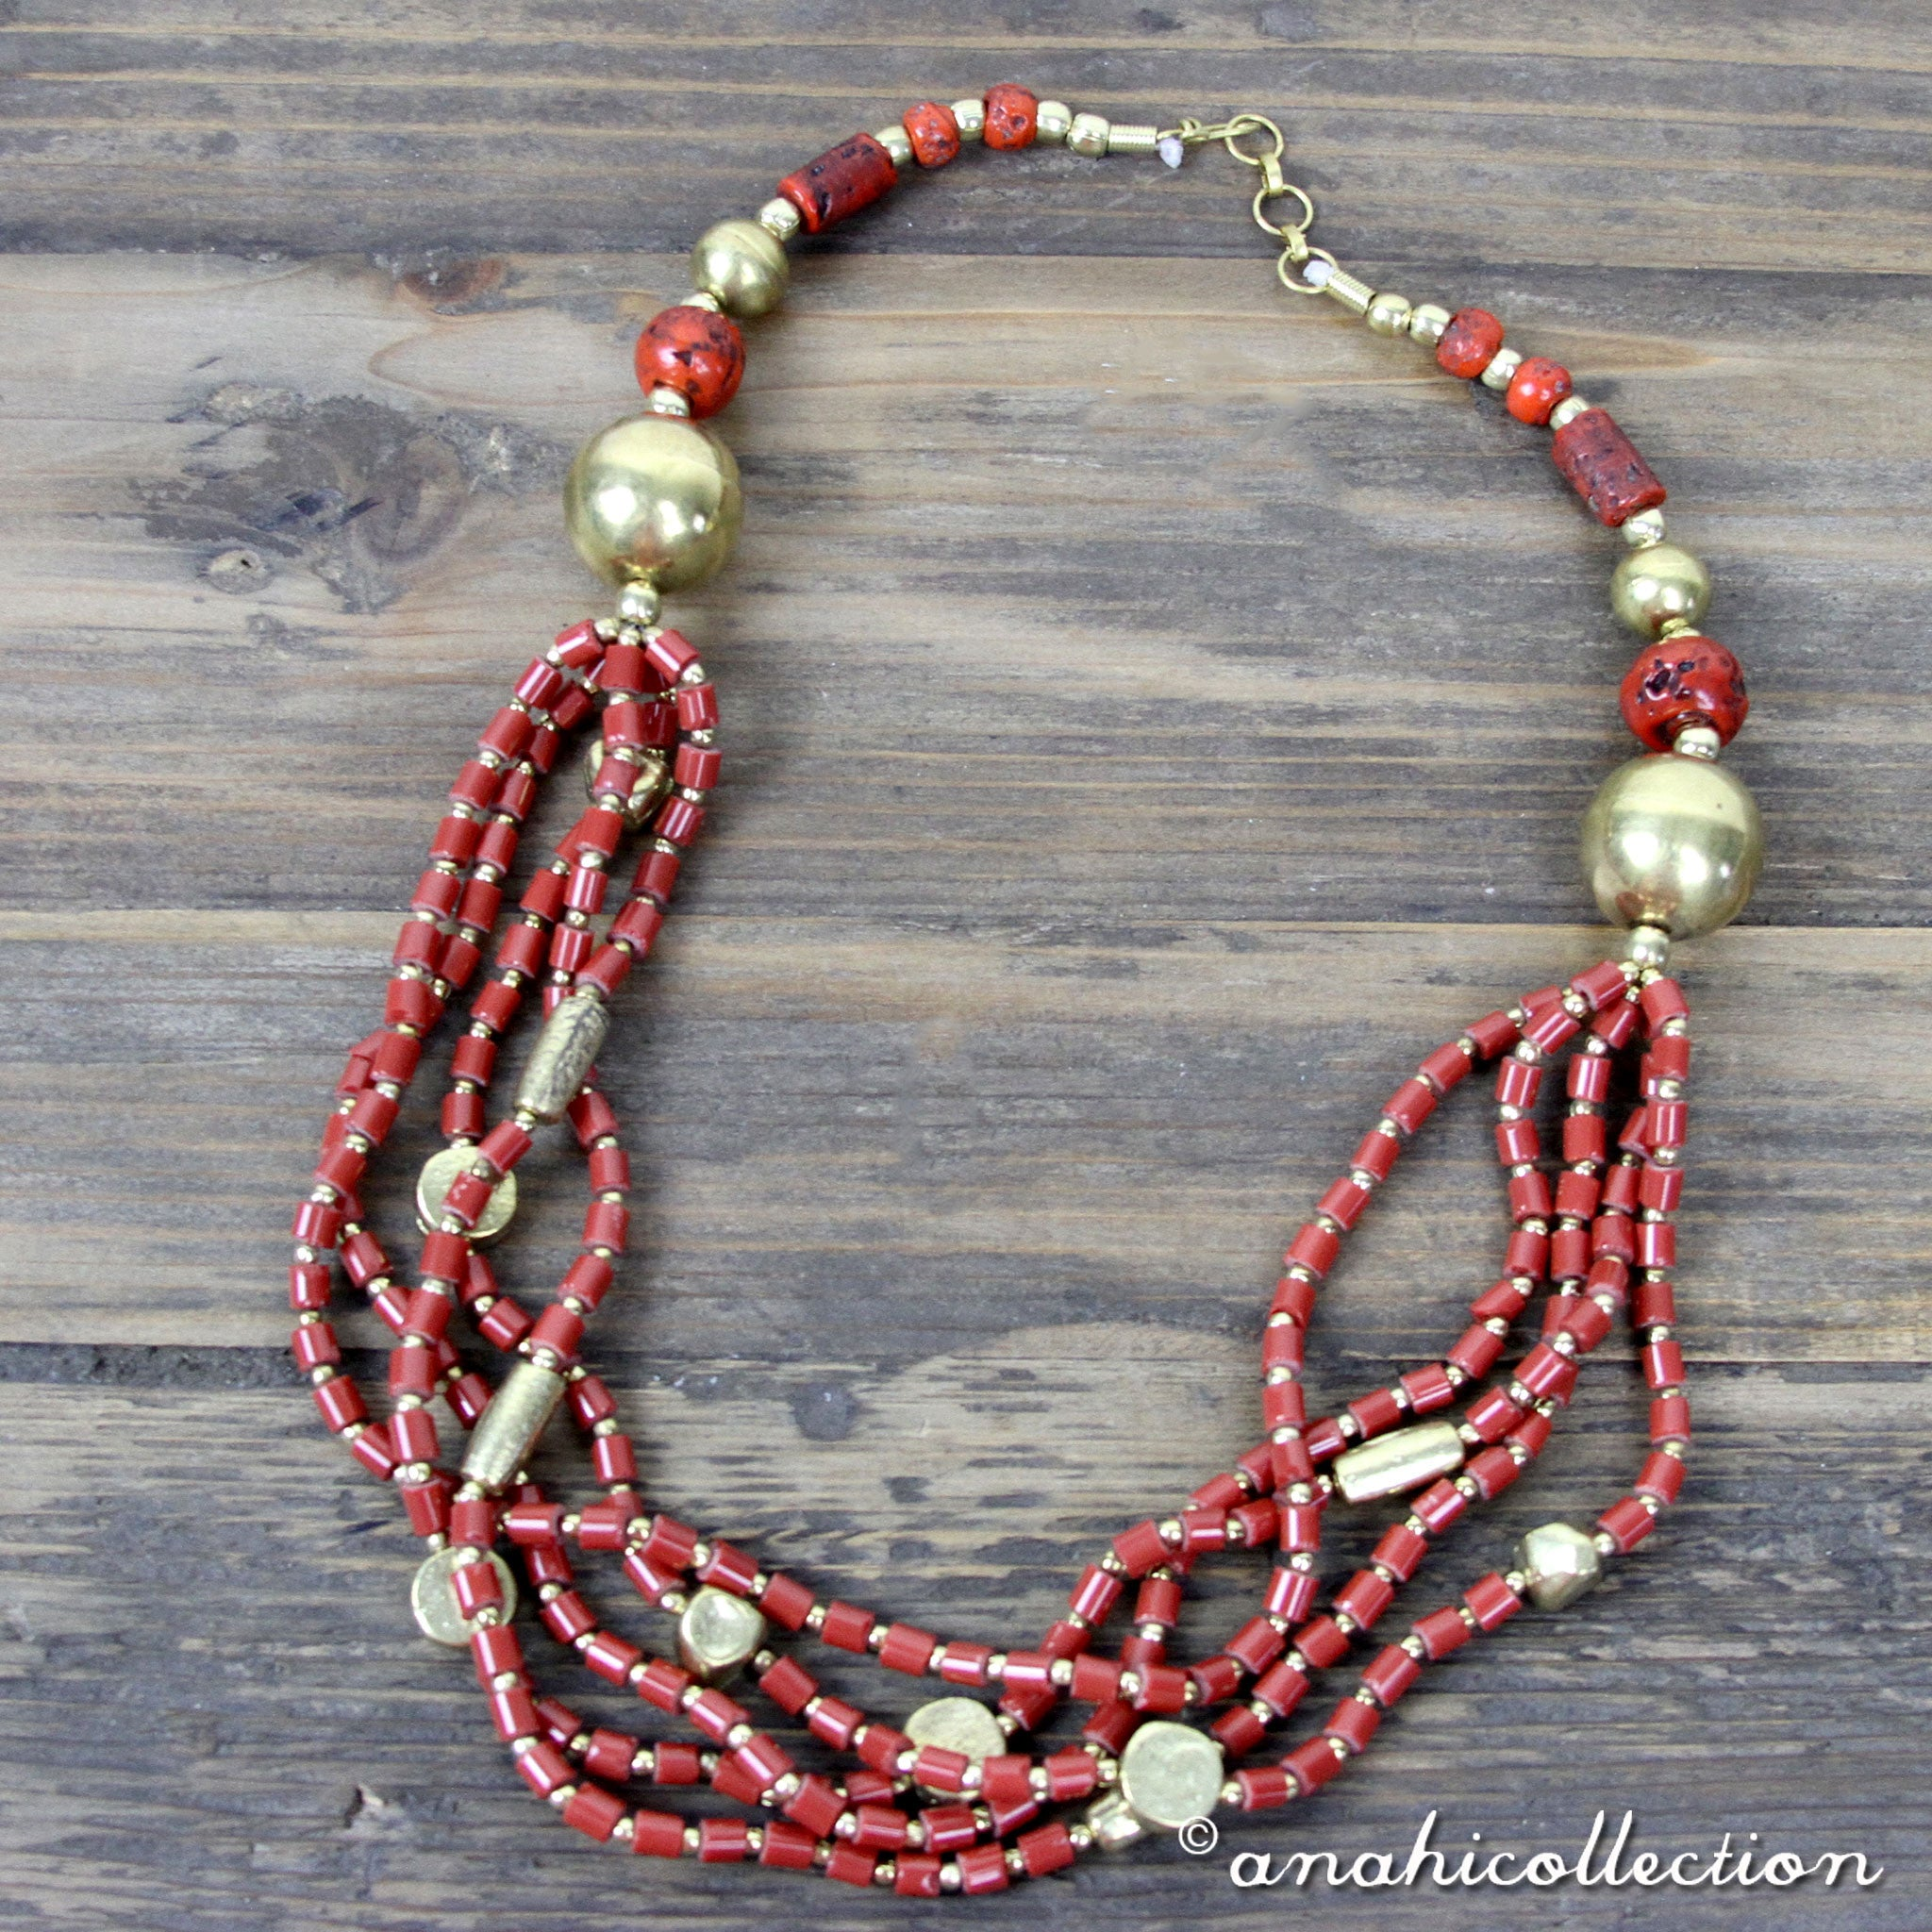 Camandu Necklace